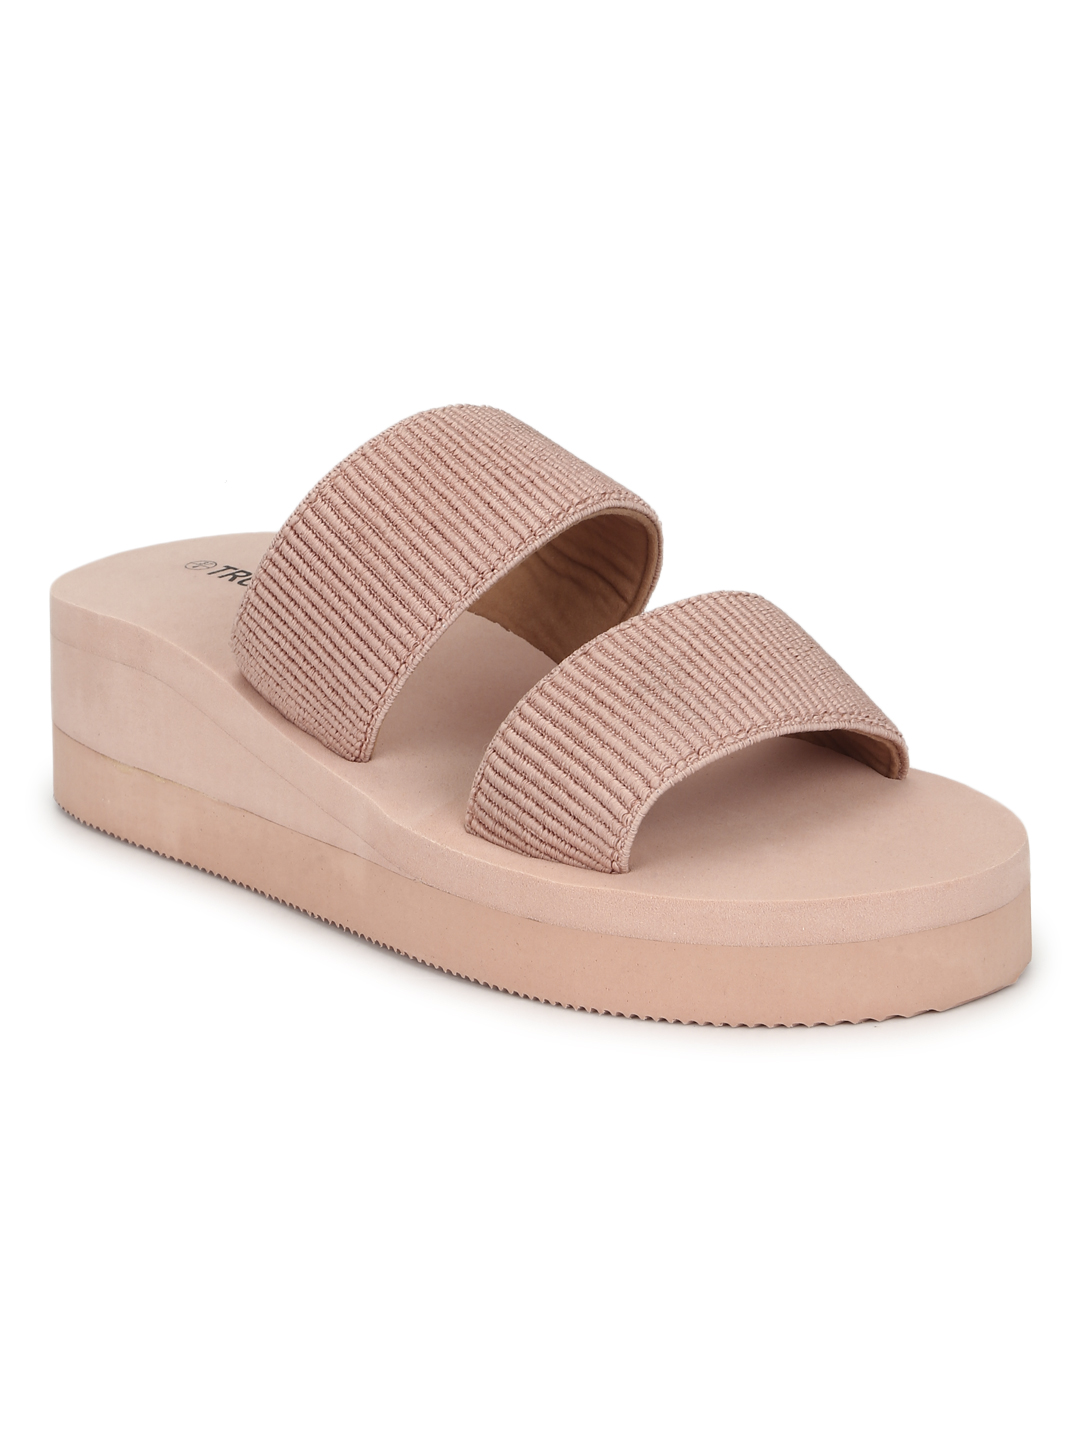 Truffle Collection | Beige EVA Wedges With Wide Front Straps